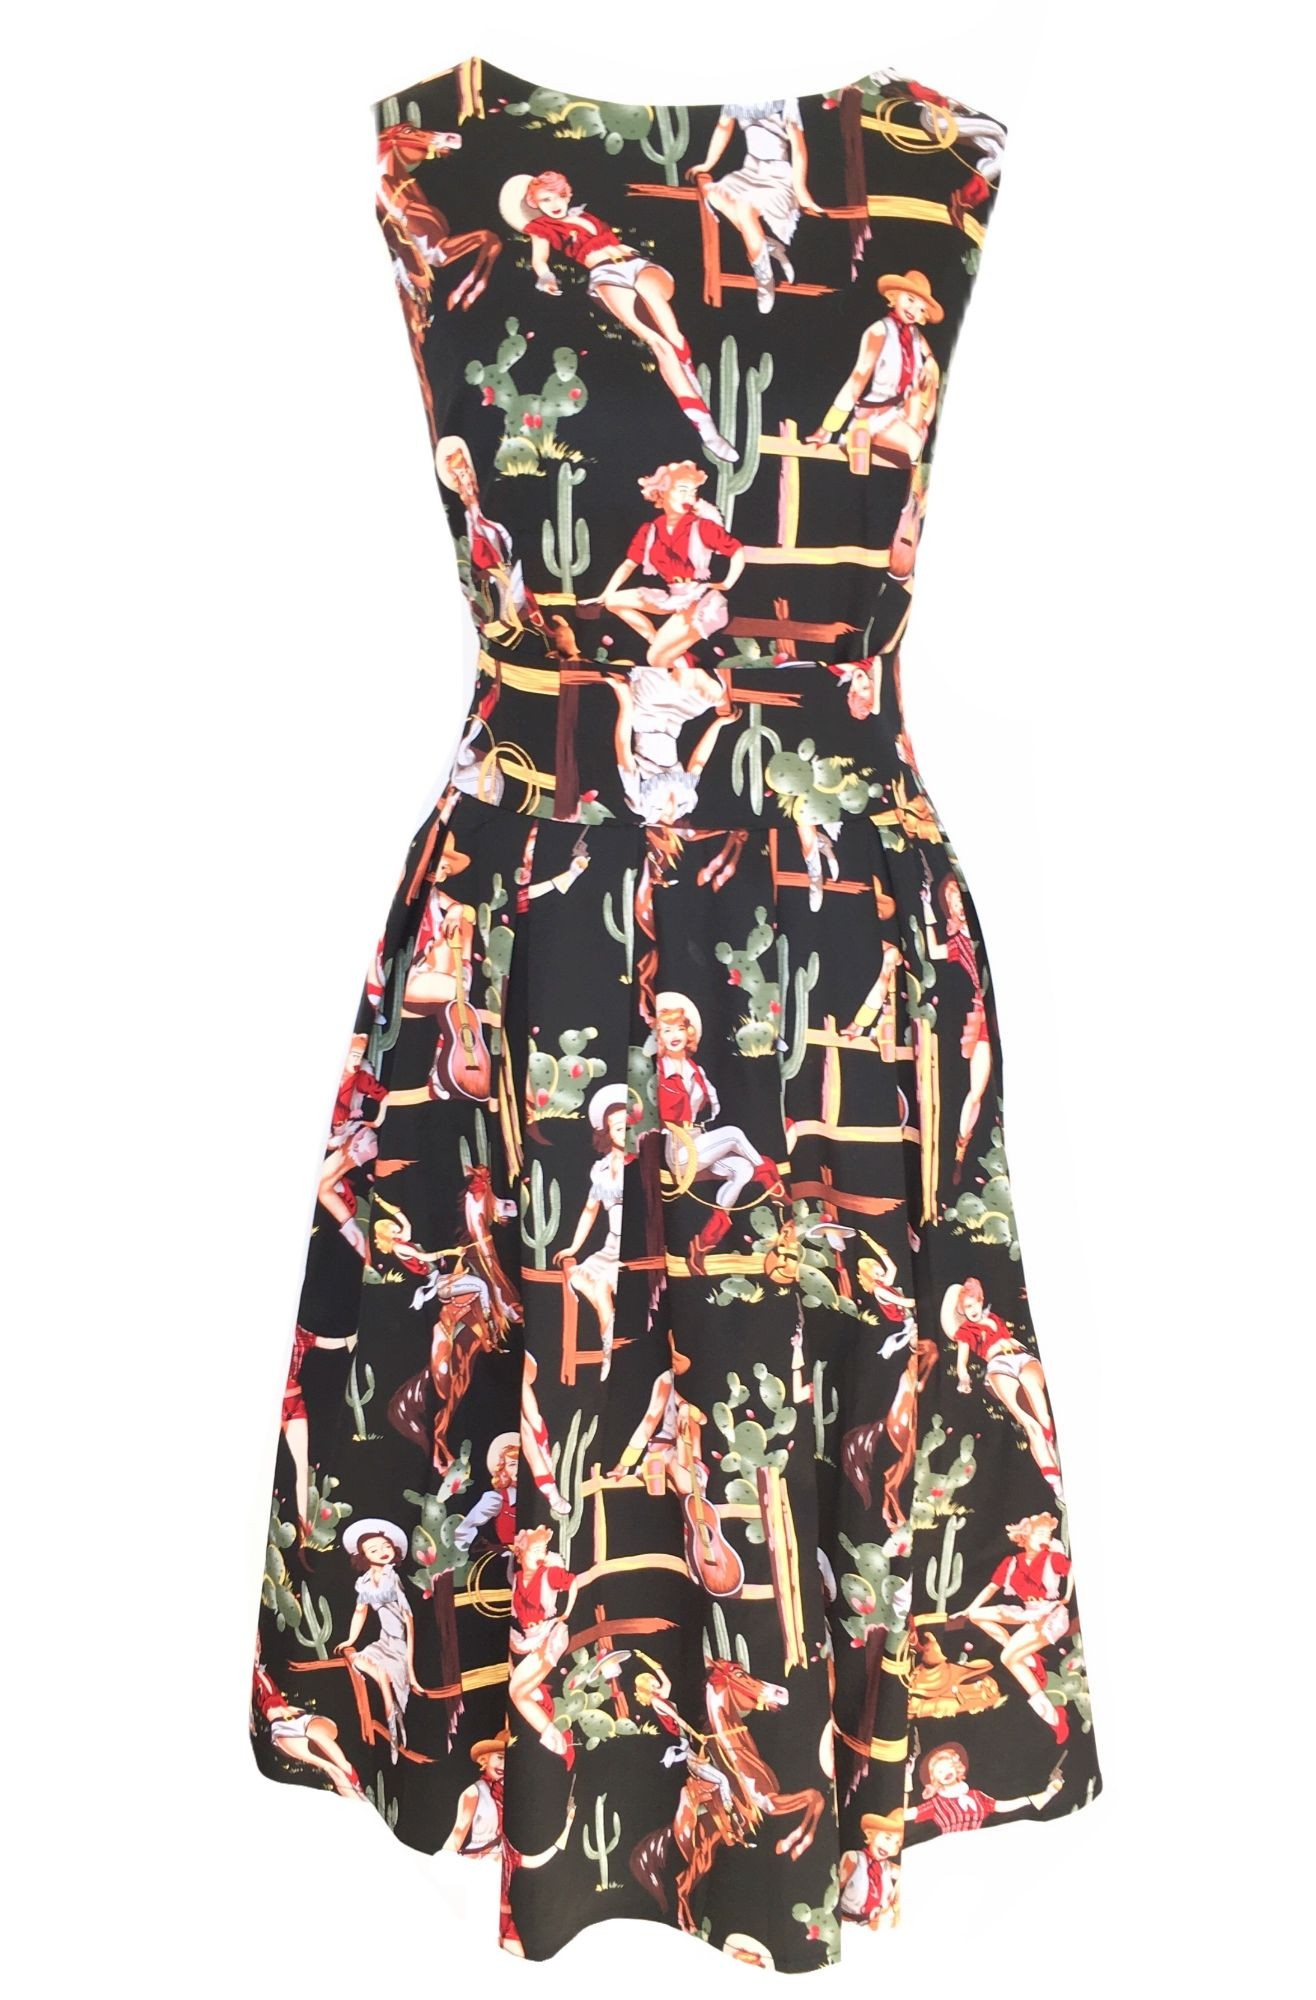 Cowgirl Print Dress Quirky Printed Prom